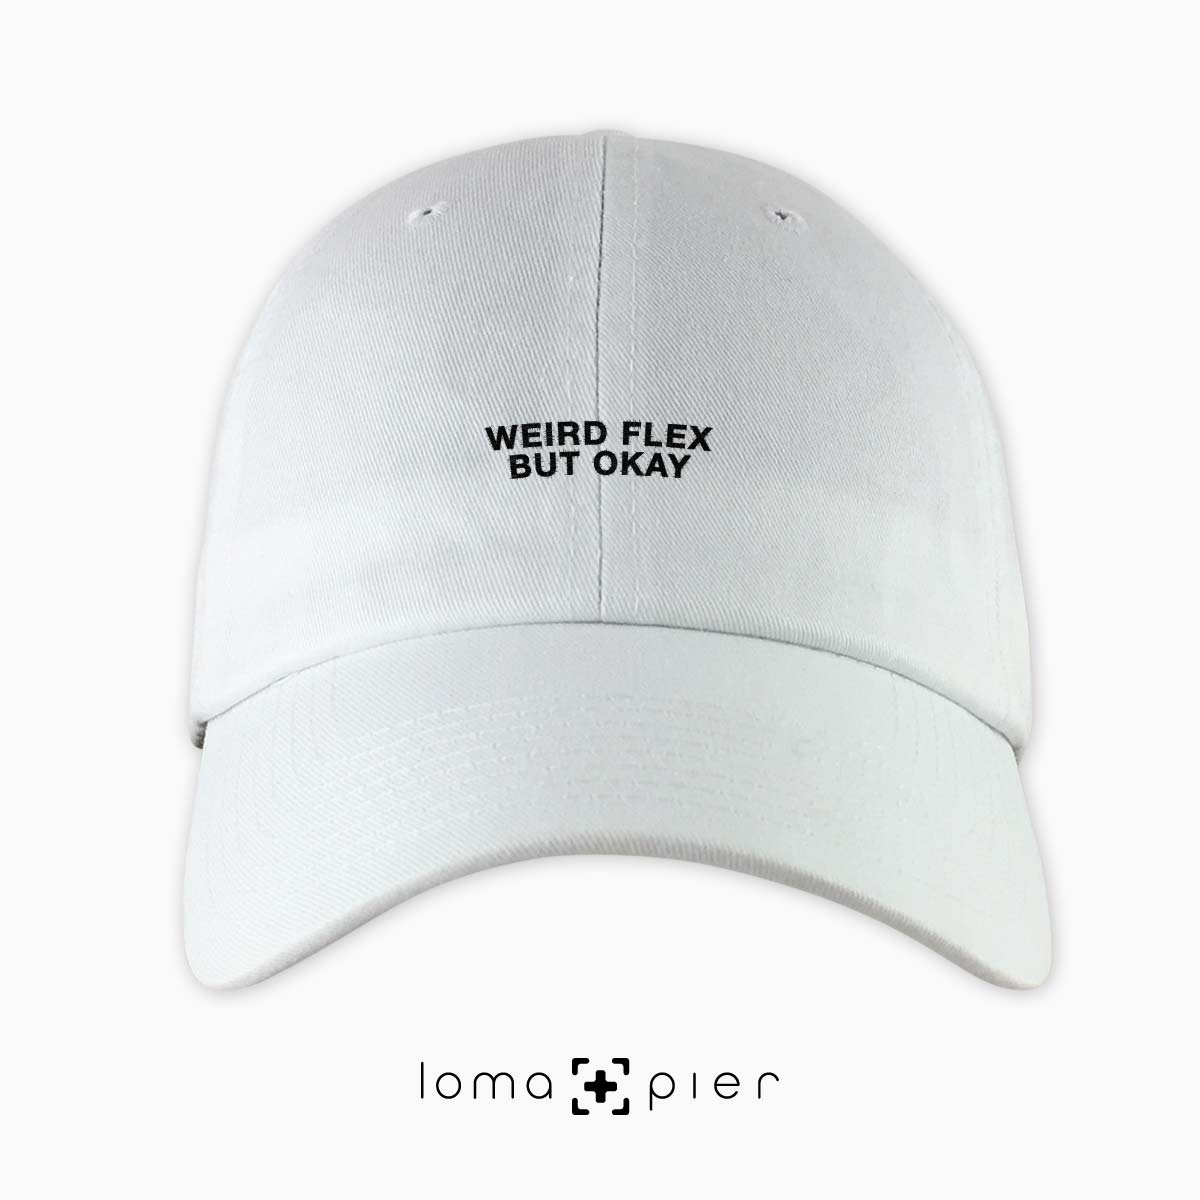 WEIRD FLEX BUT OKAY dad hat in white by loma+pier hat store